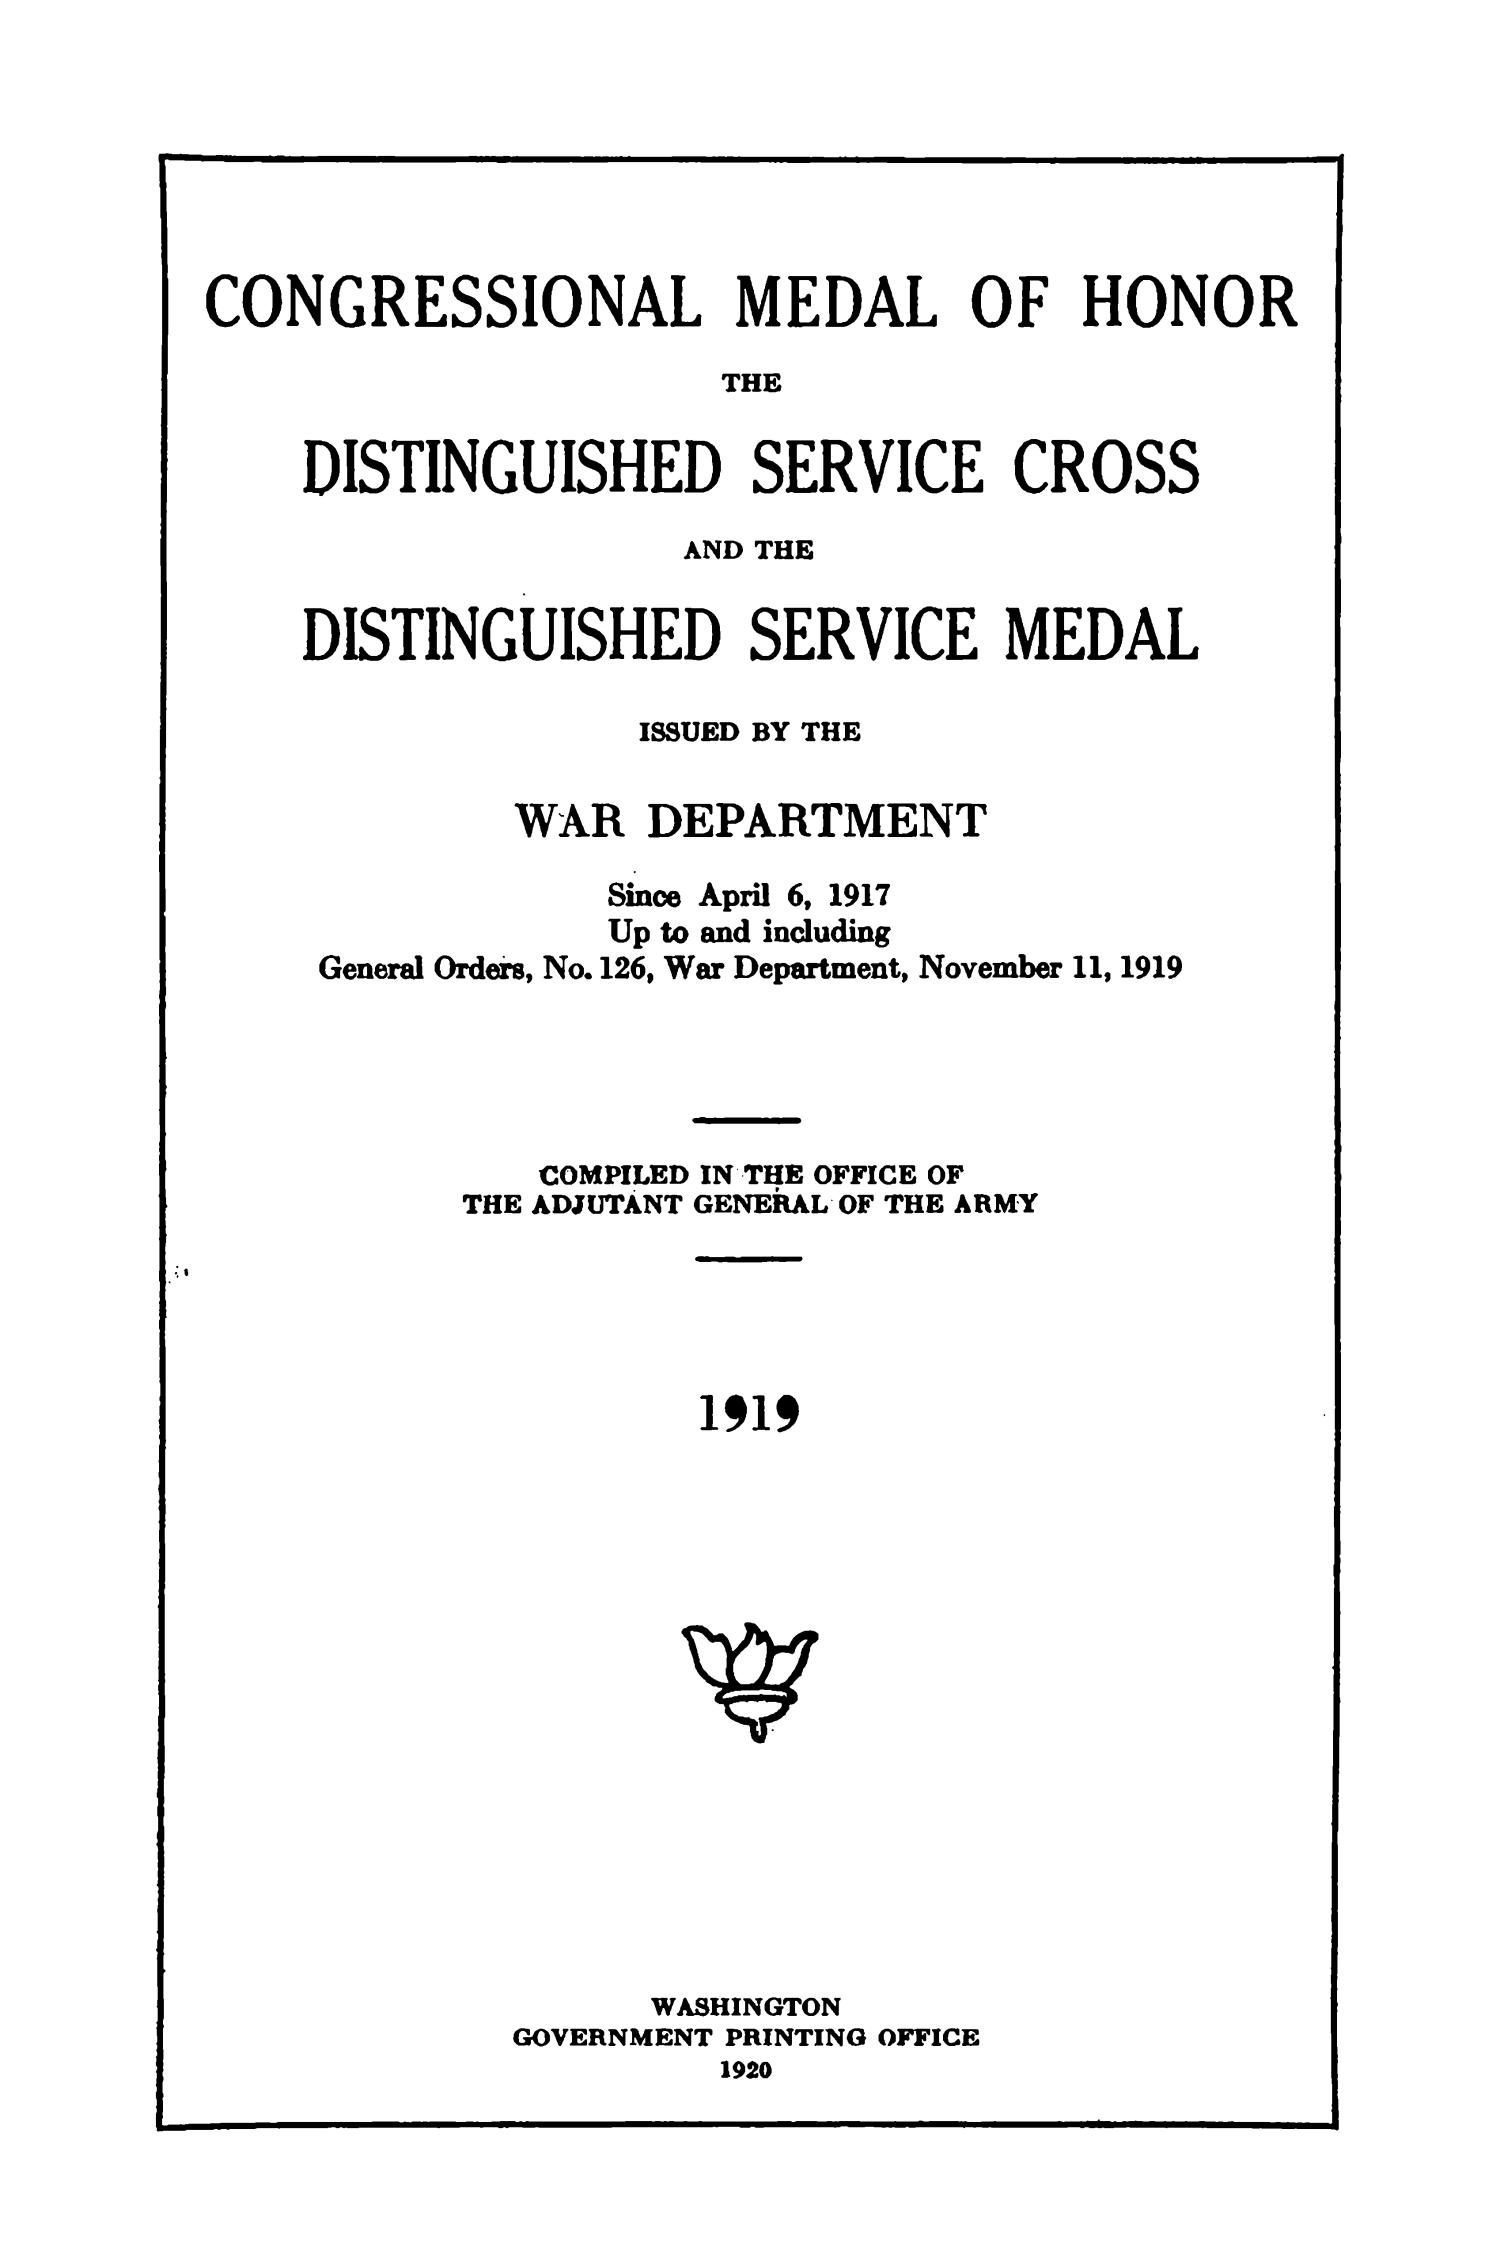 Congressional Medal of Honor, the Distinguished Service Cross, and the Distinguished Service Medal Issued by the War Department Since April 6, 1971 Up to and including General Orders, Number 126, War Department, November 11, 1919                                                                                                      Title Page